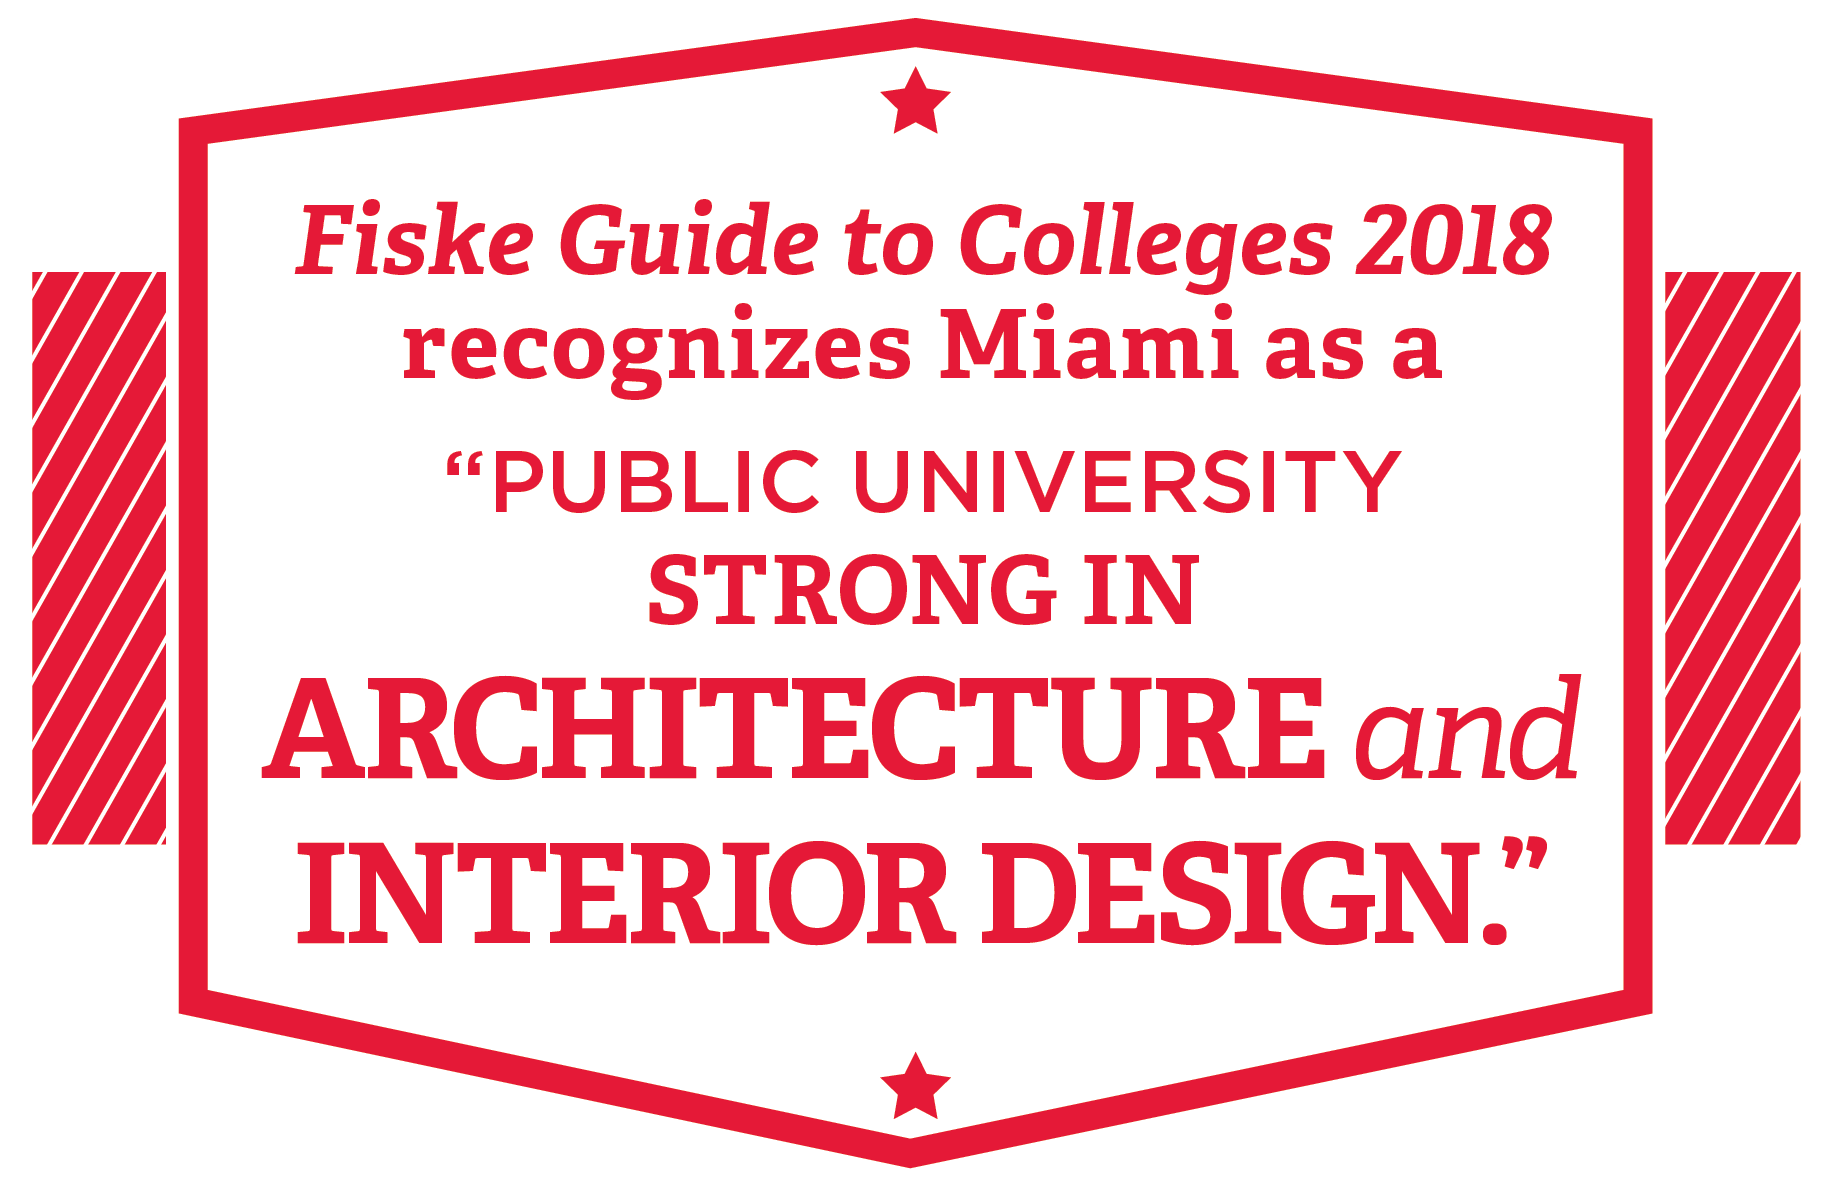 Fiske Guide to Colleges 2018 recognizes Miami as a public university strong in architecture and interior design